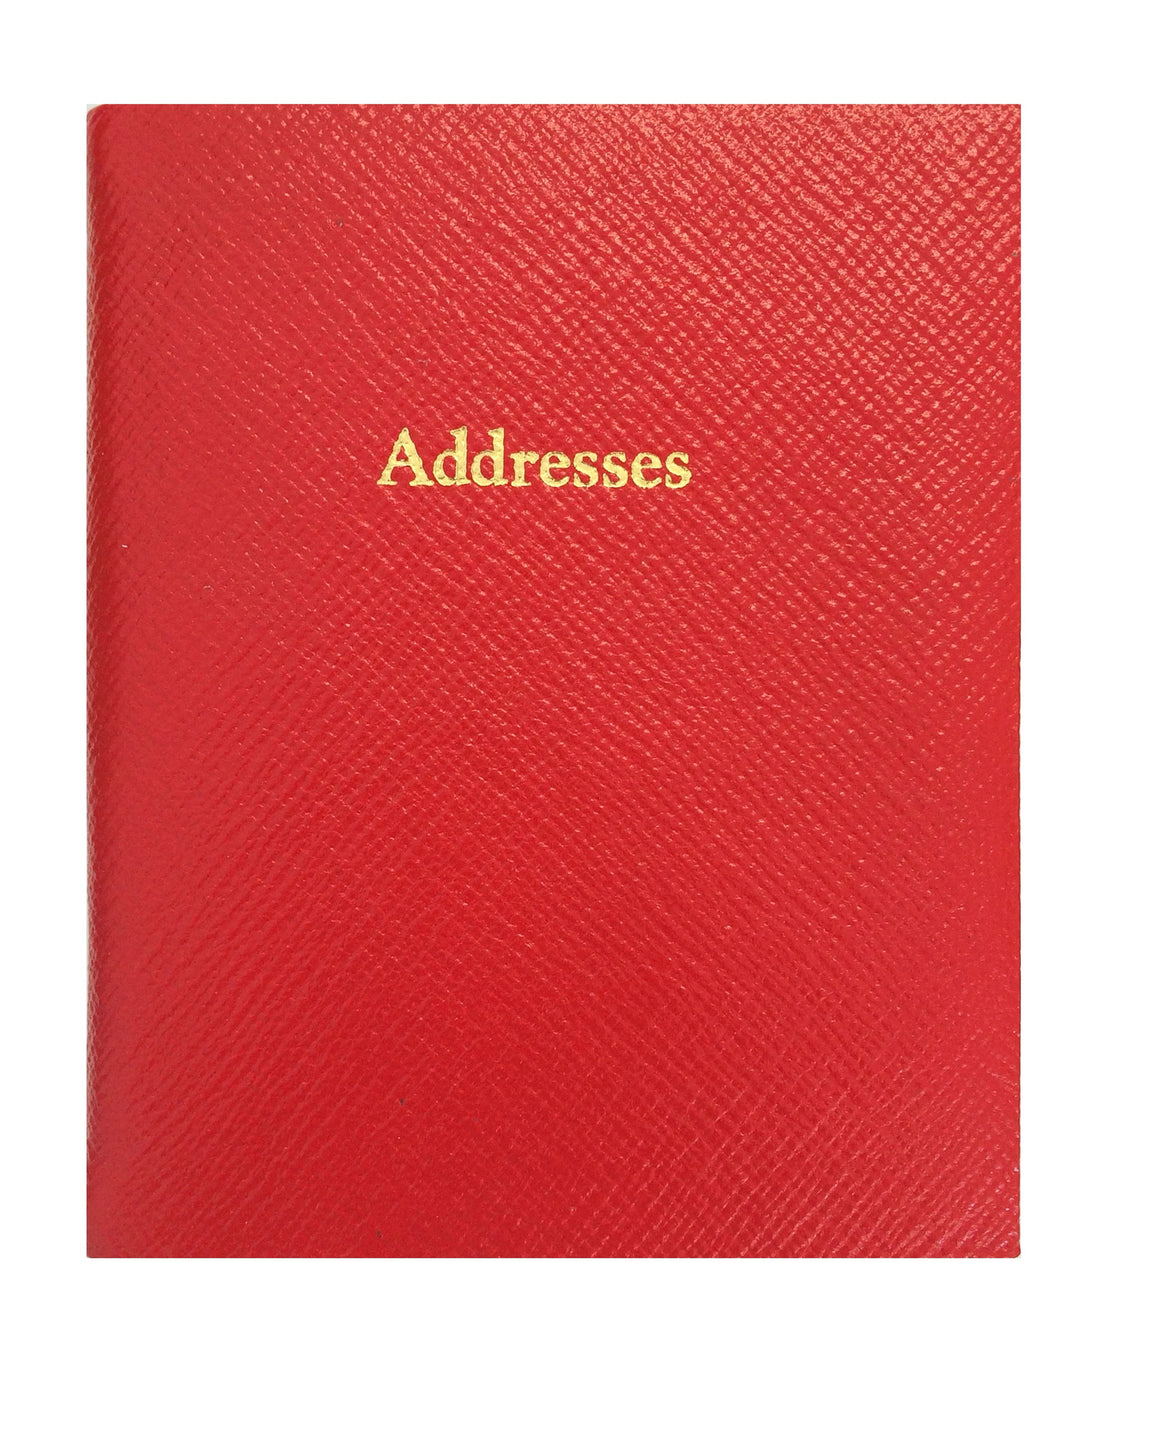 ABB55R Berkeley Address Book